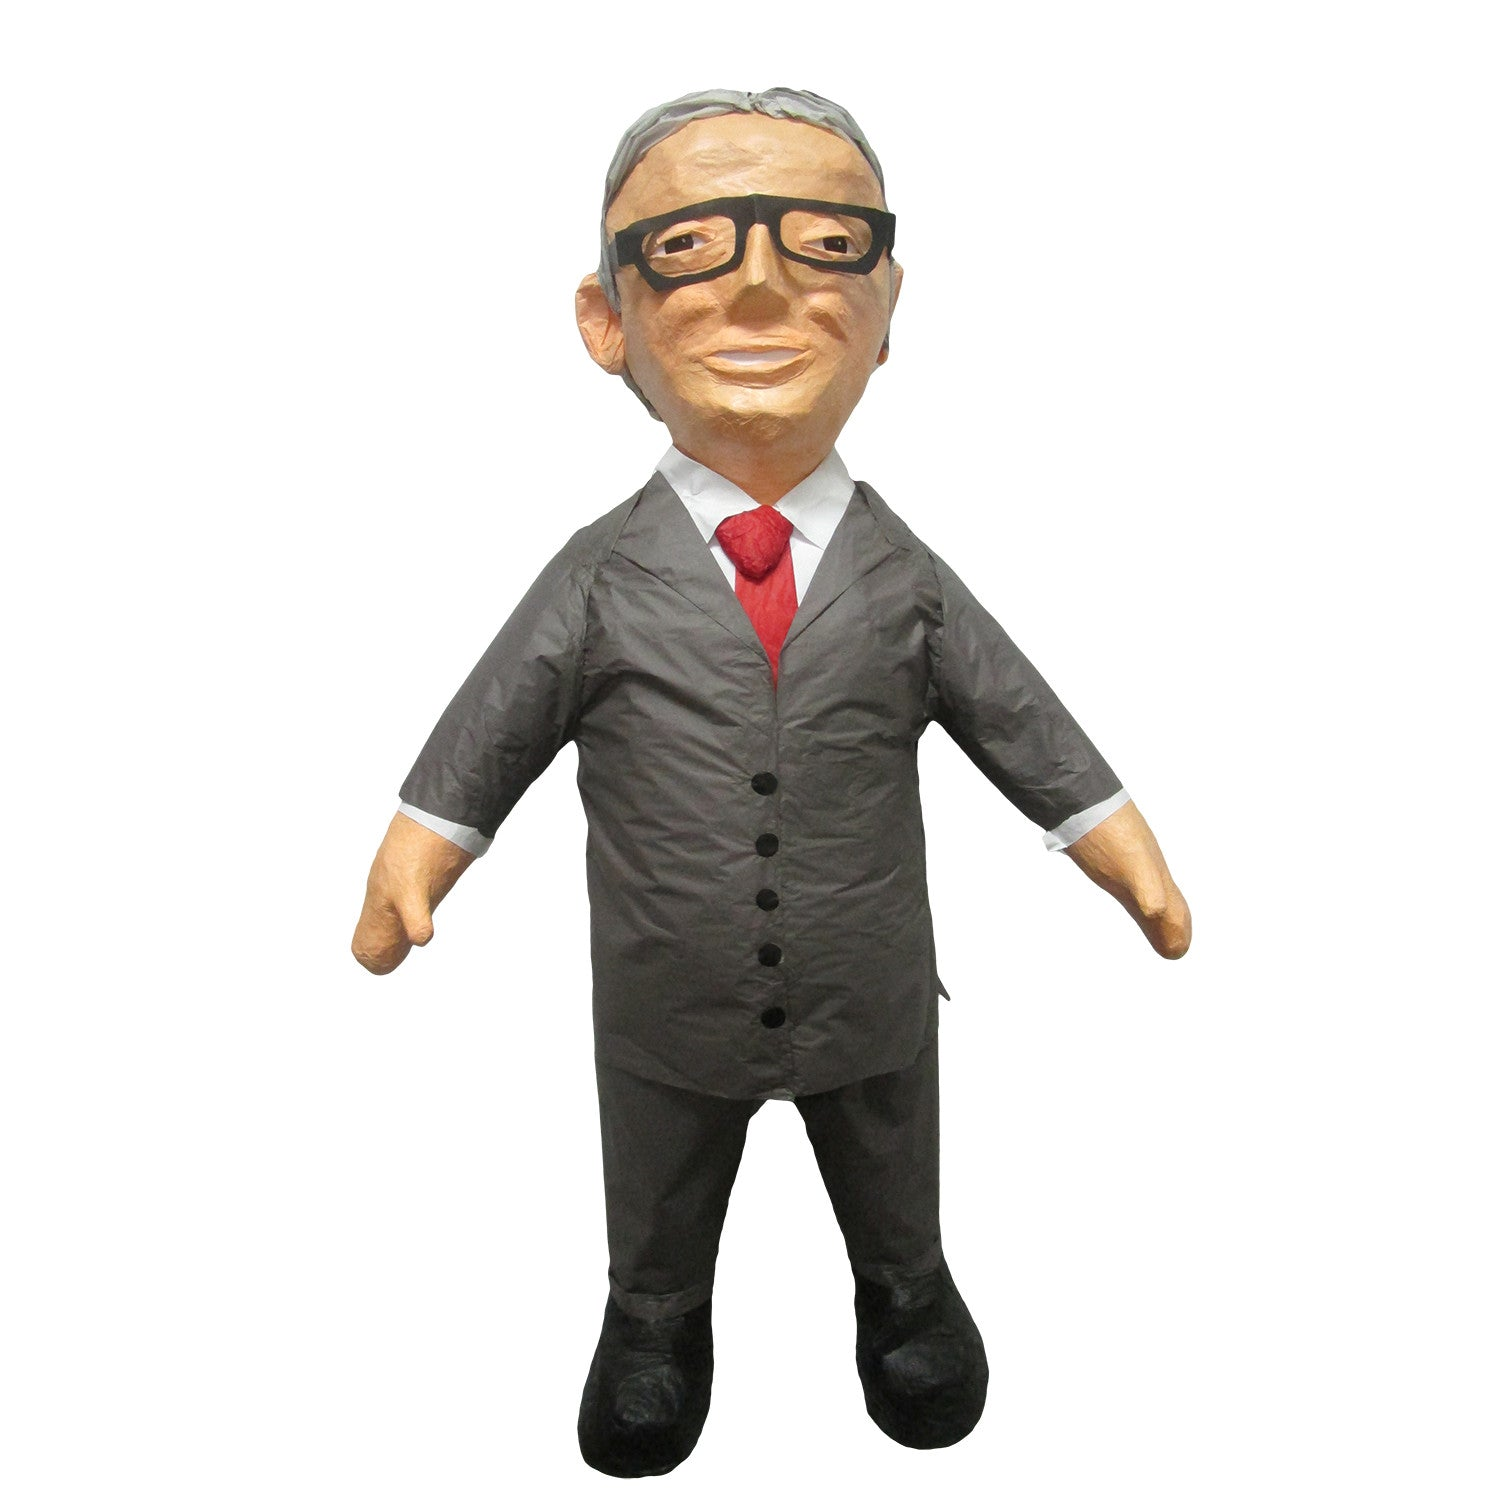 Man With Suit and Glasses Custom Pinatas